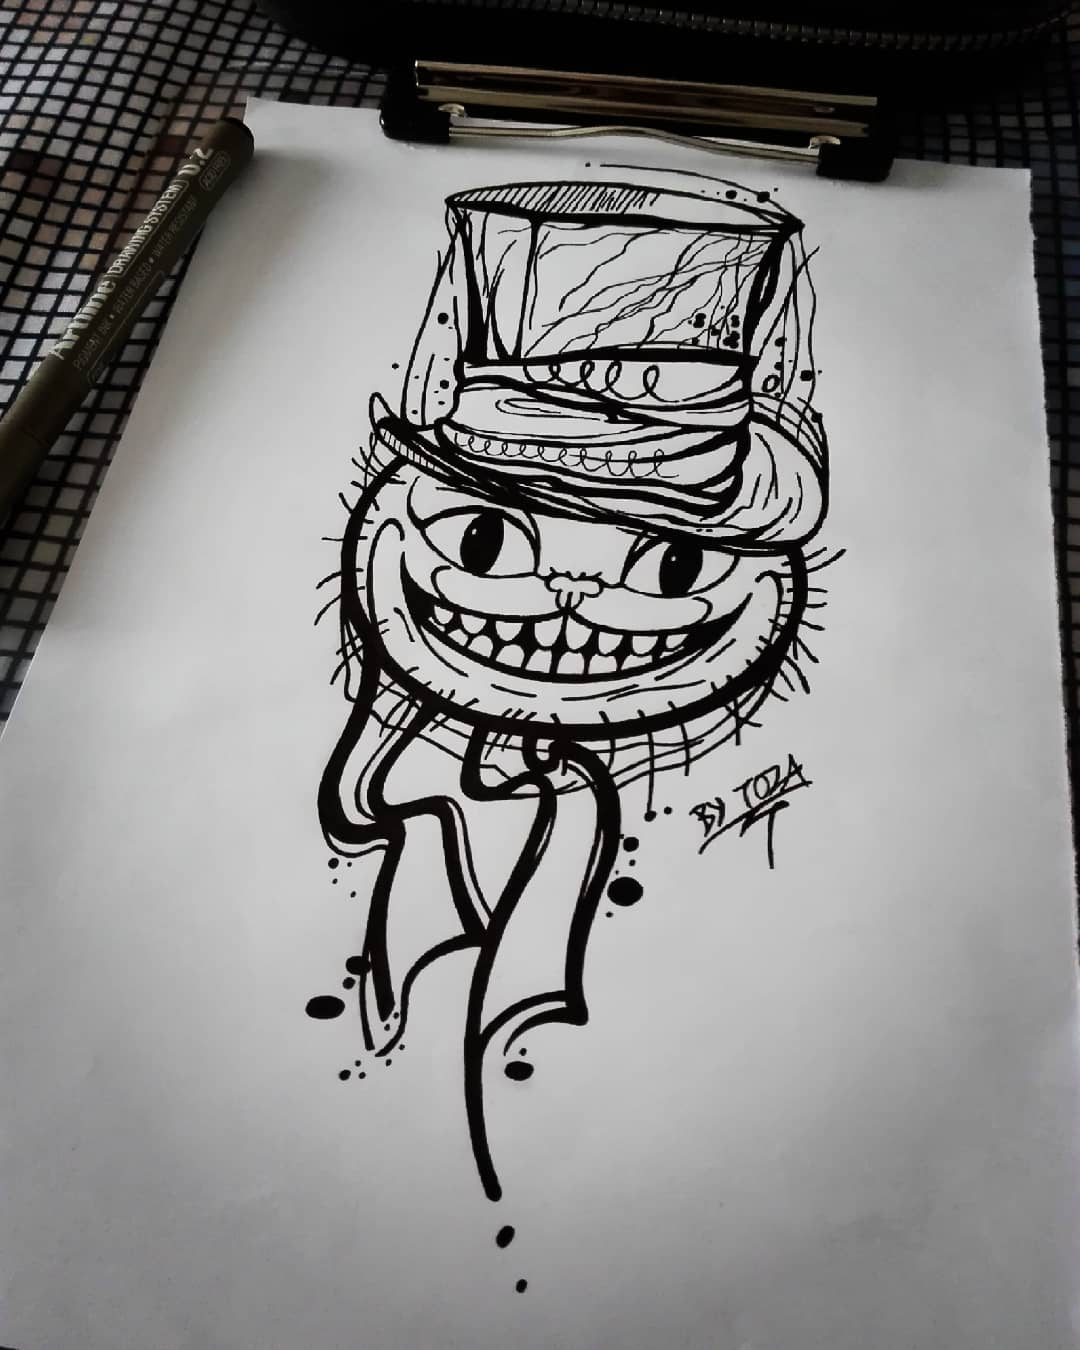 Sketch of the Cheshire Cat